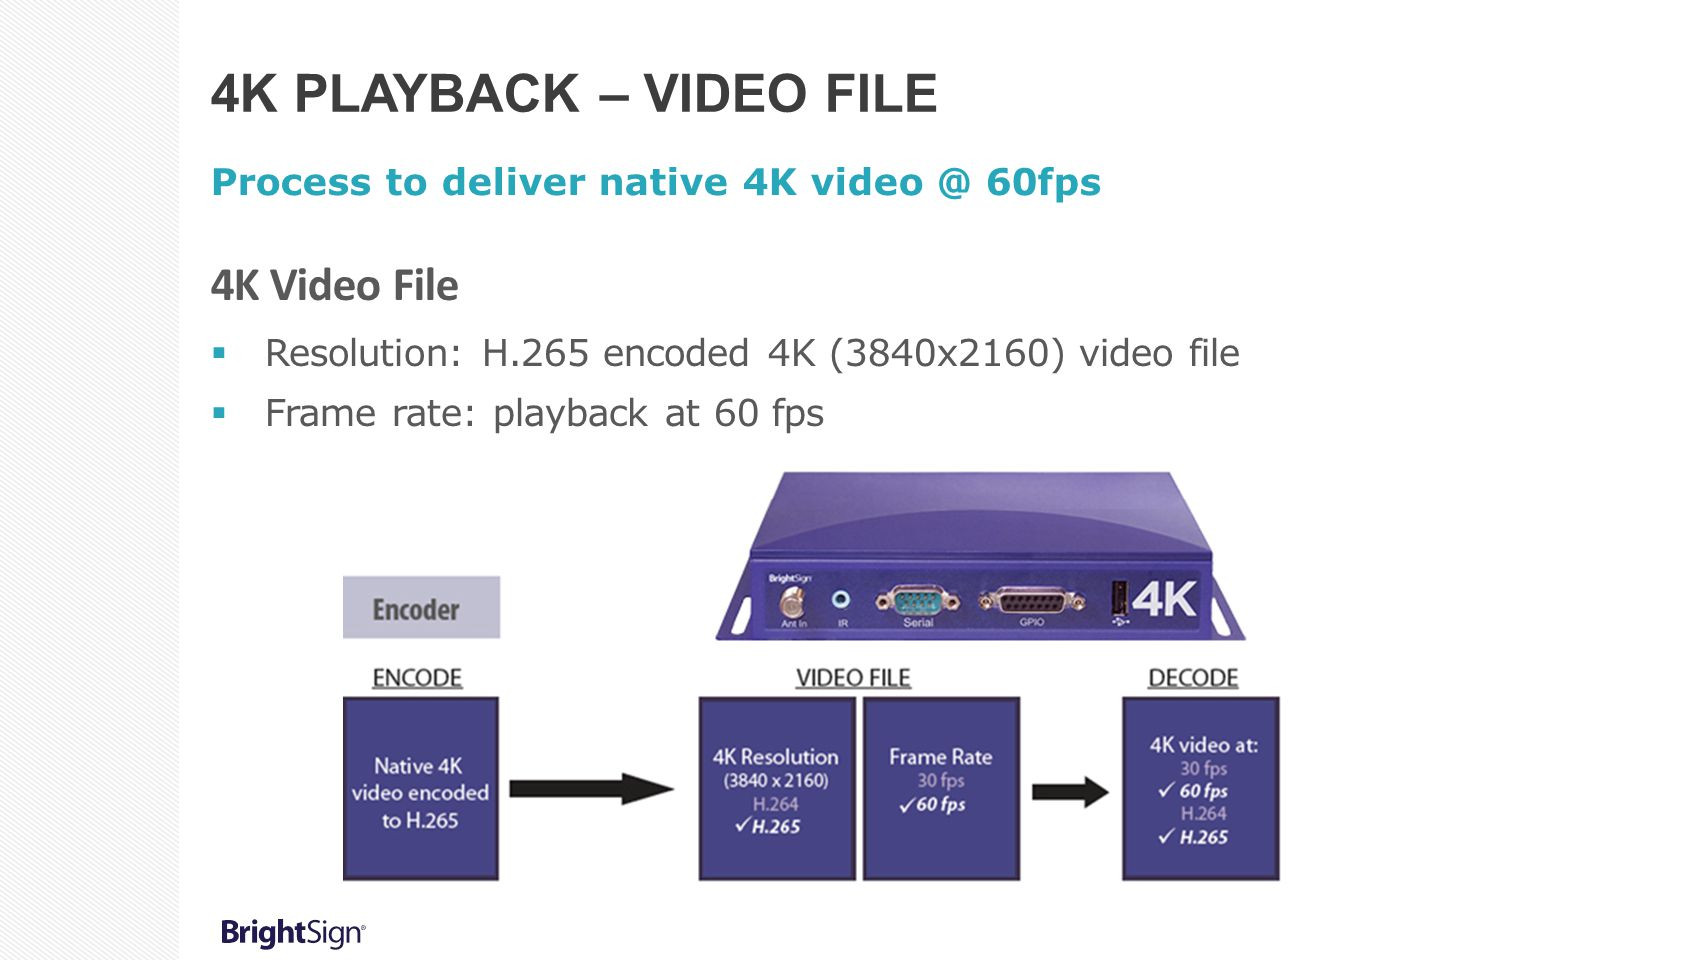 4K PLAYBACK – VIDEO FILE Process to deliver native 4K video @ 60fps 4K Video File  Resolution: H.265 encoded 4K (3840x2160) video file  Frame rate: playback at 60 fps